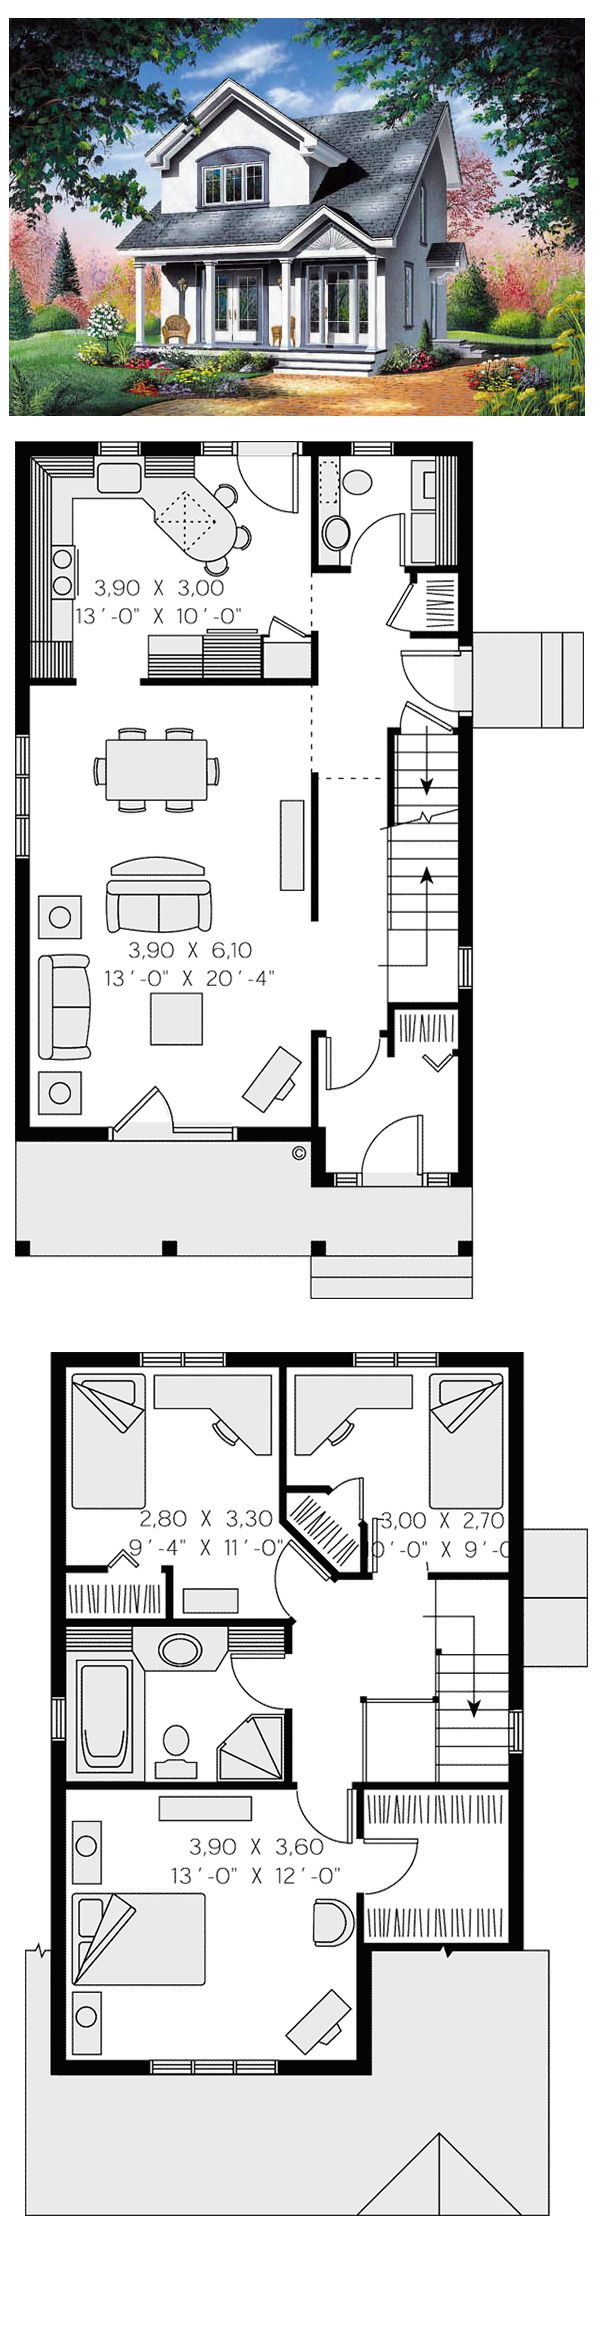 196 best cabins images on pinterest floor plans my house and